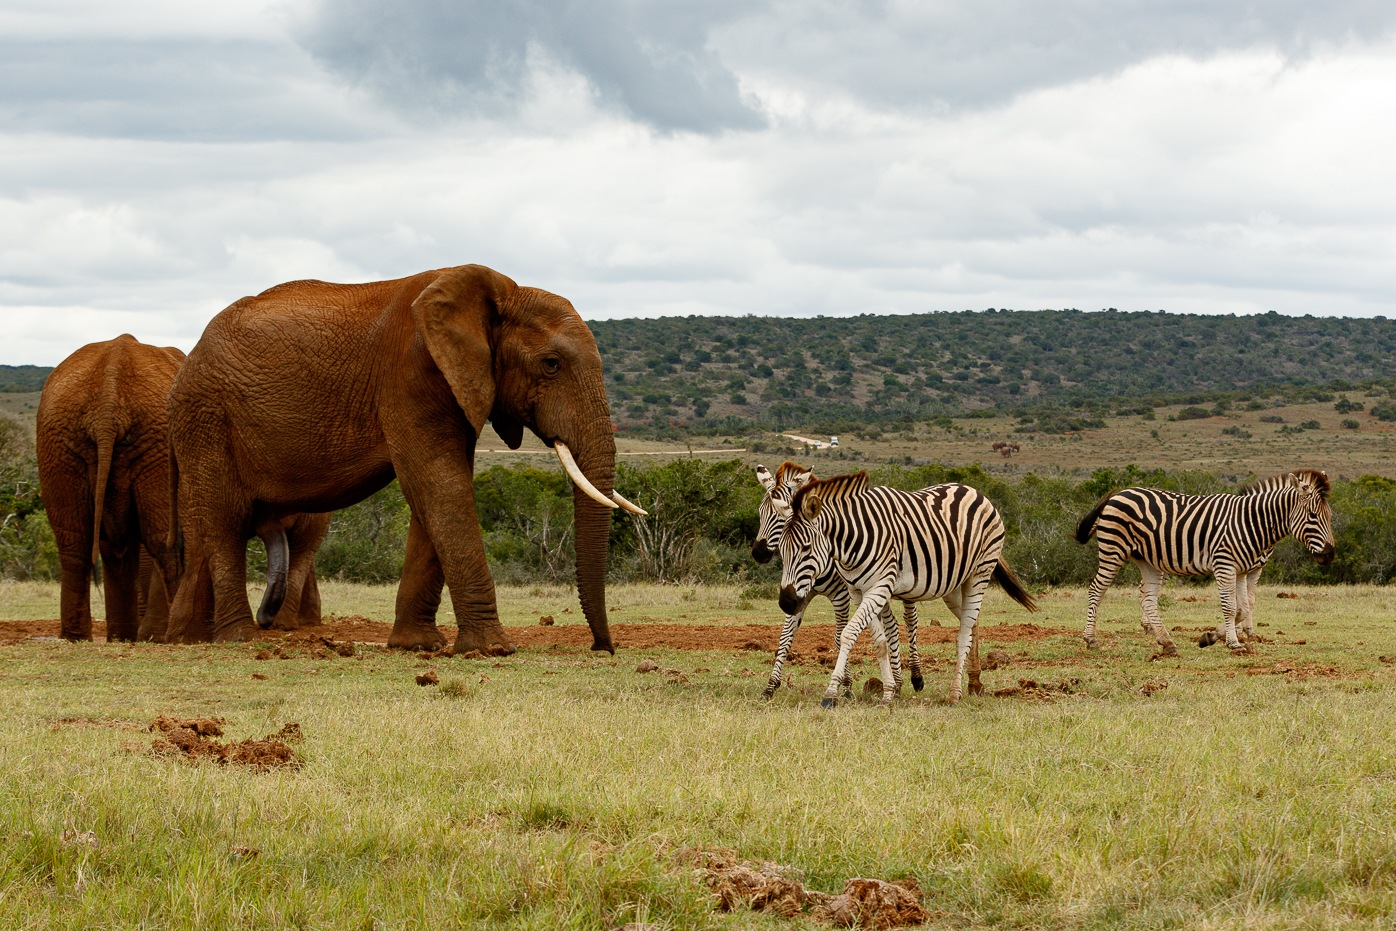 Elephants chasing the Zebras away  by Mark de Scande